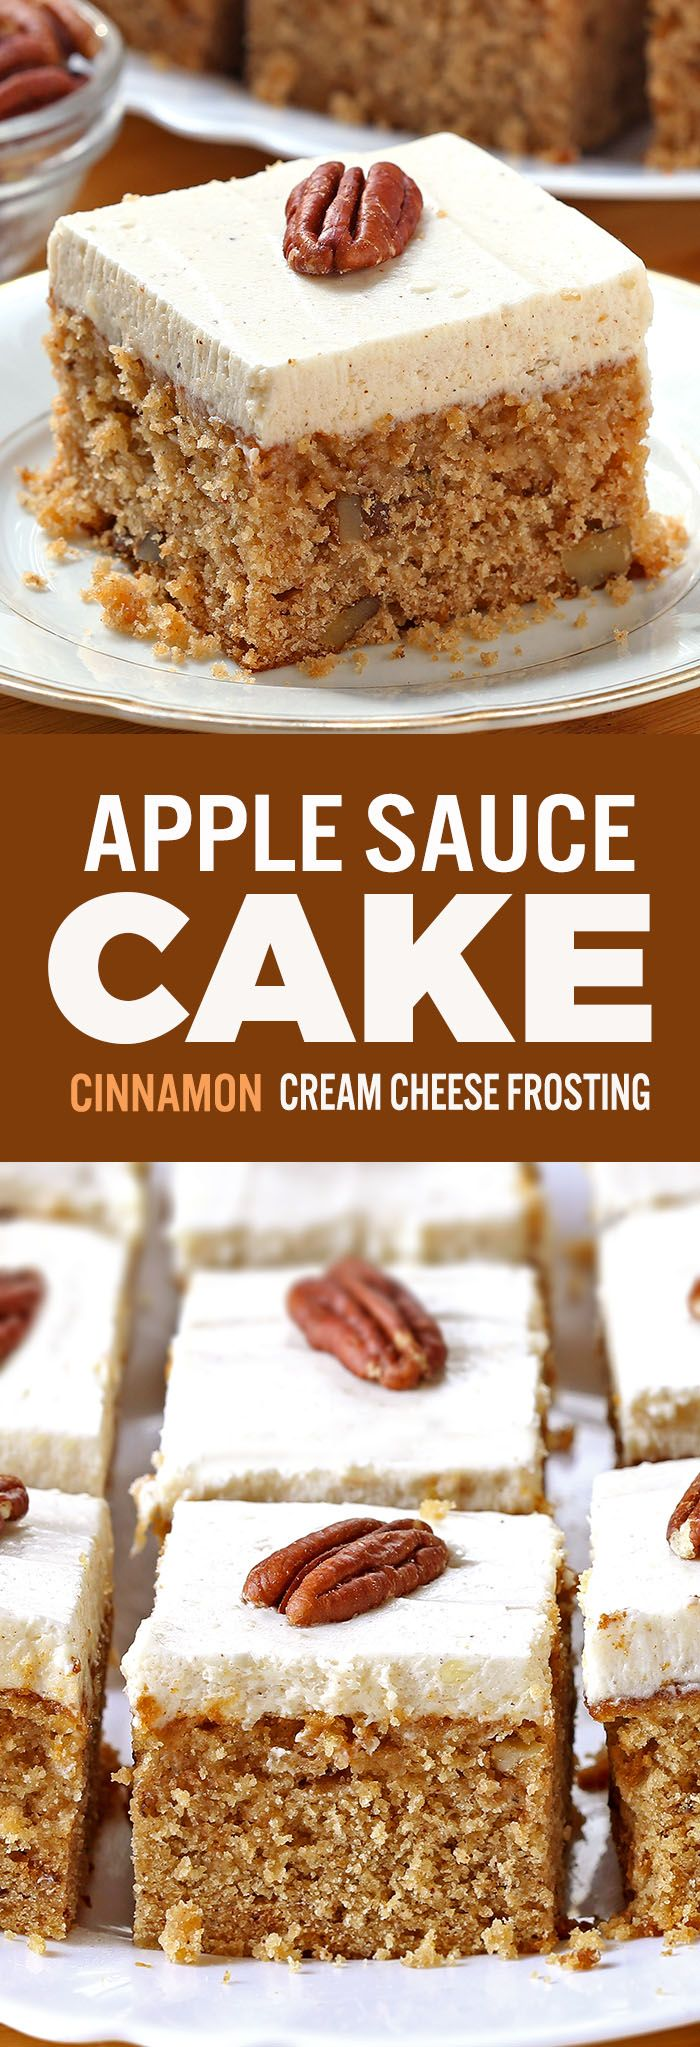 Applesauce Cake with Cinnamon Cream Cheese Frosting - Sugar Apron